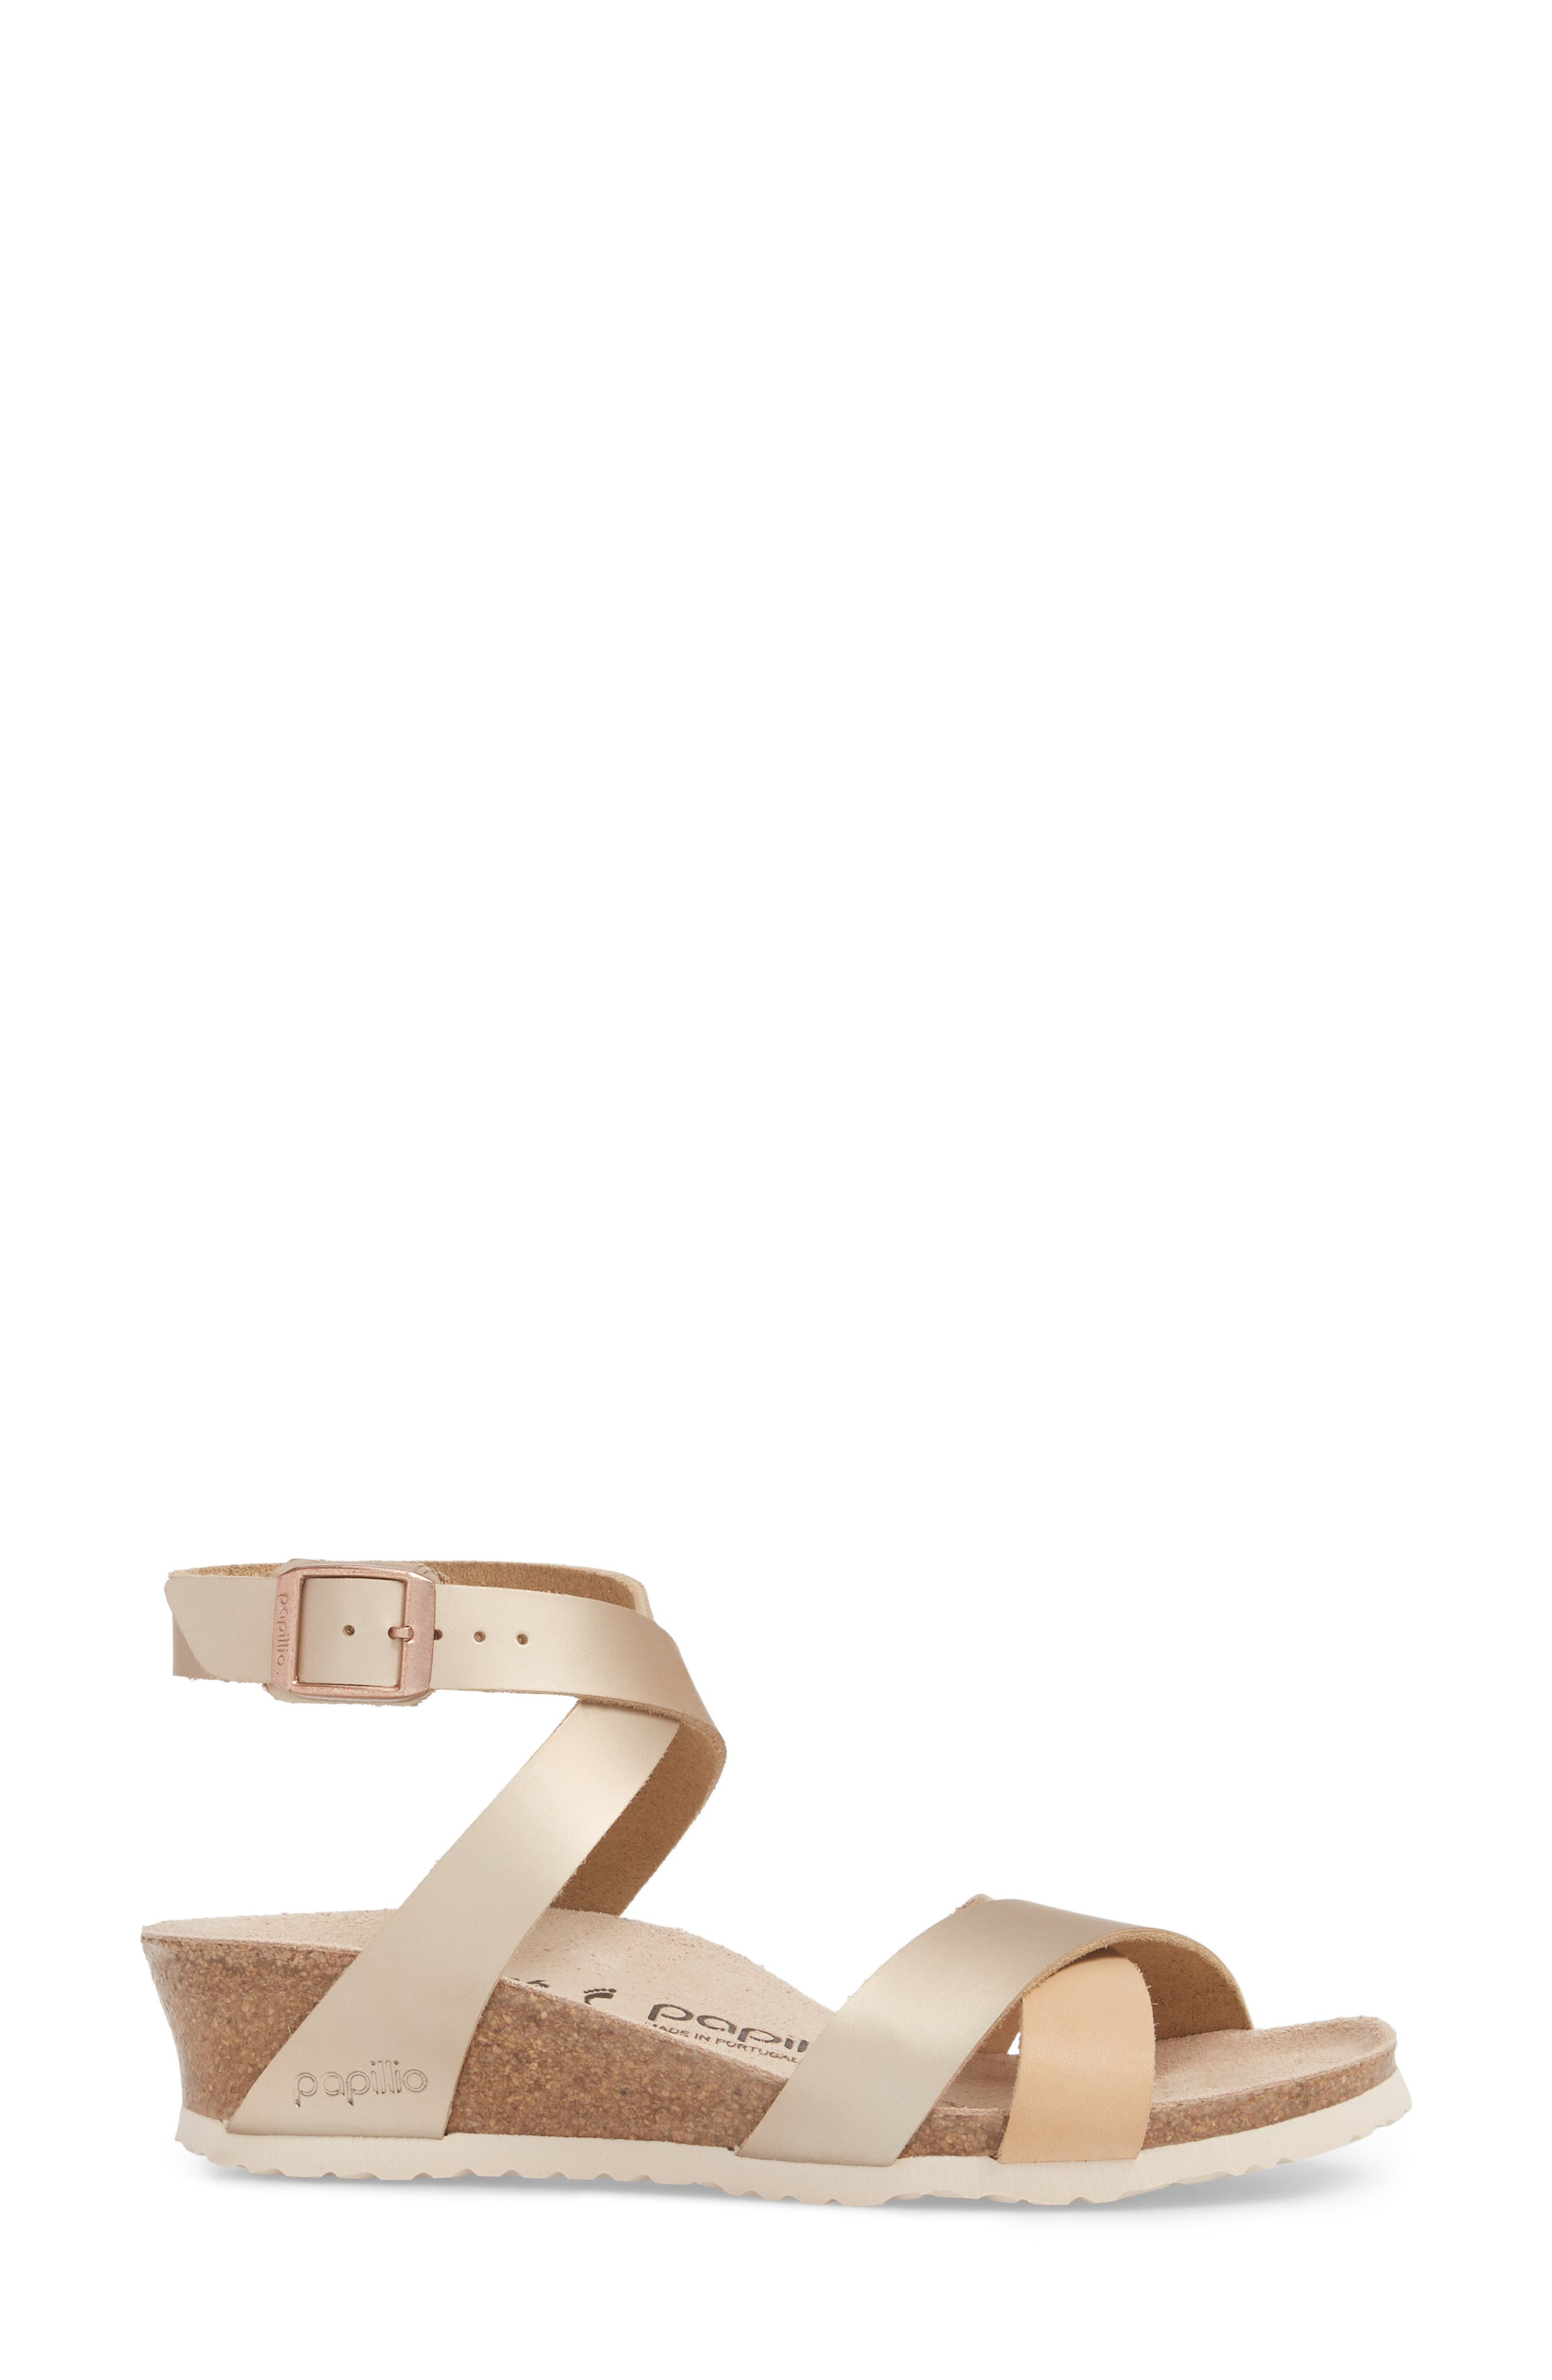 Papillio by Birkenstock Lola Wedge Sandal,                             Alternate thumbnail 3, color,                             Frosted Metallic Rose